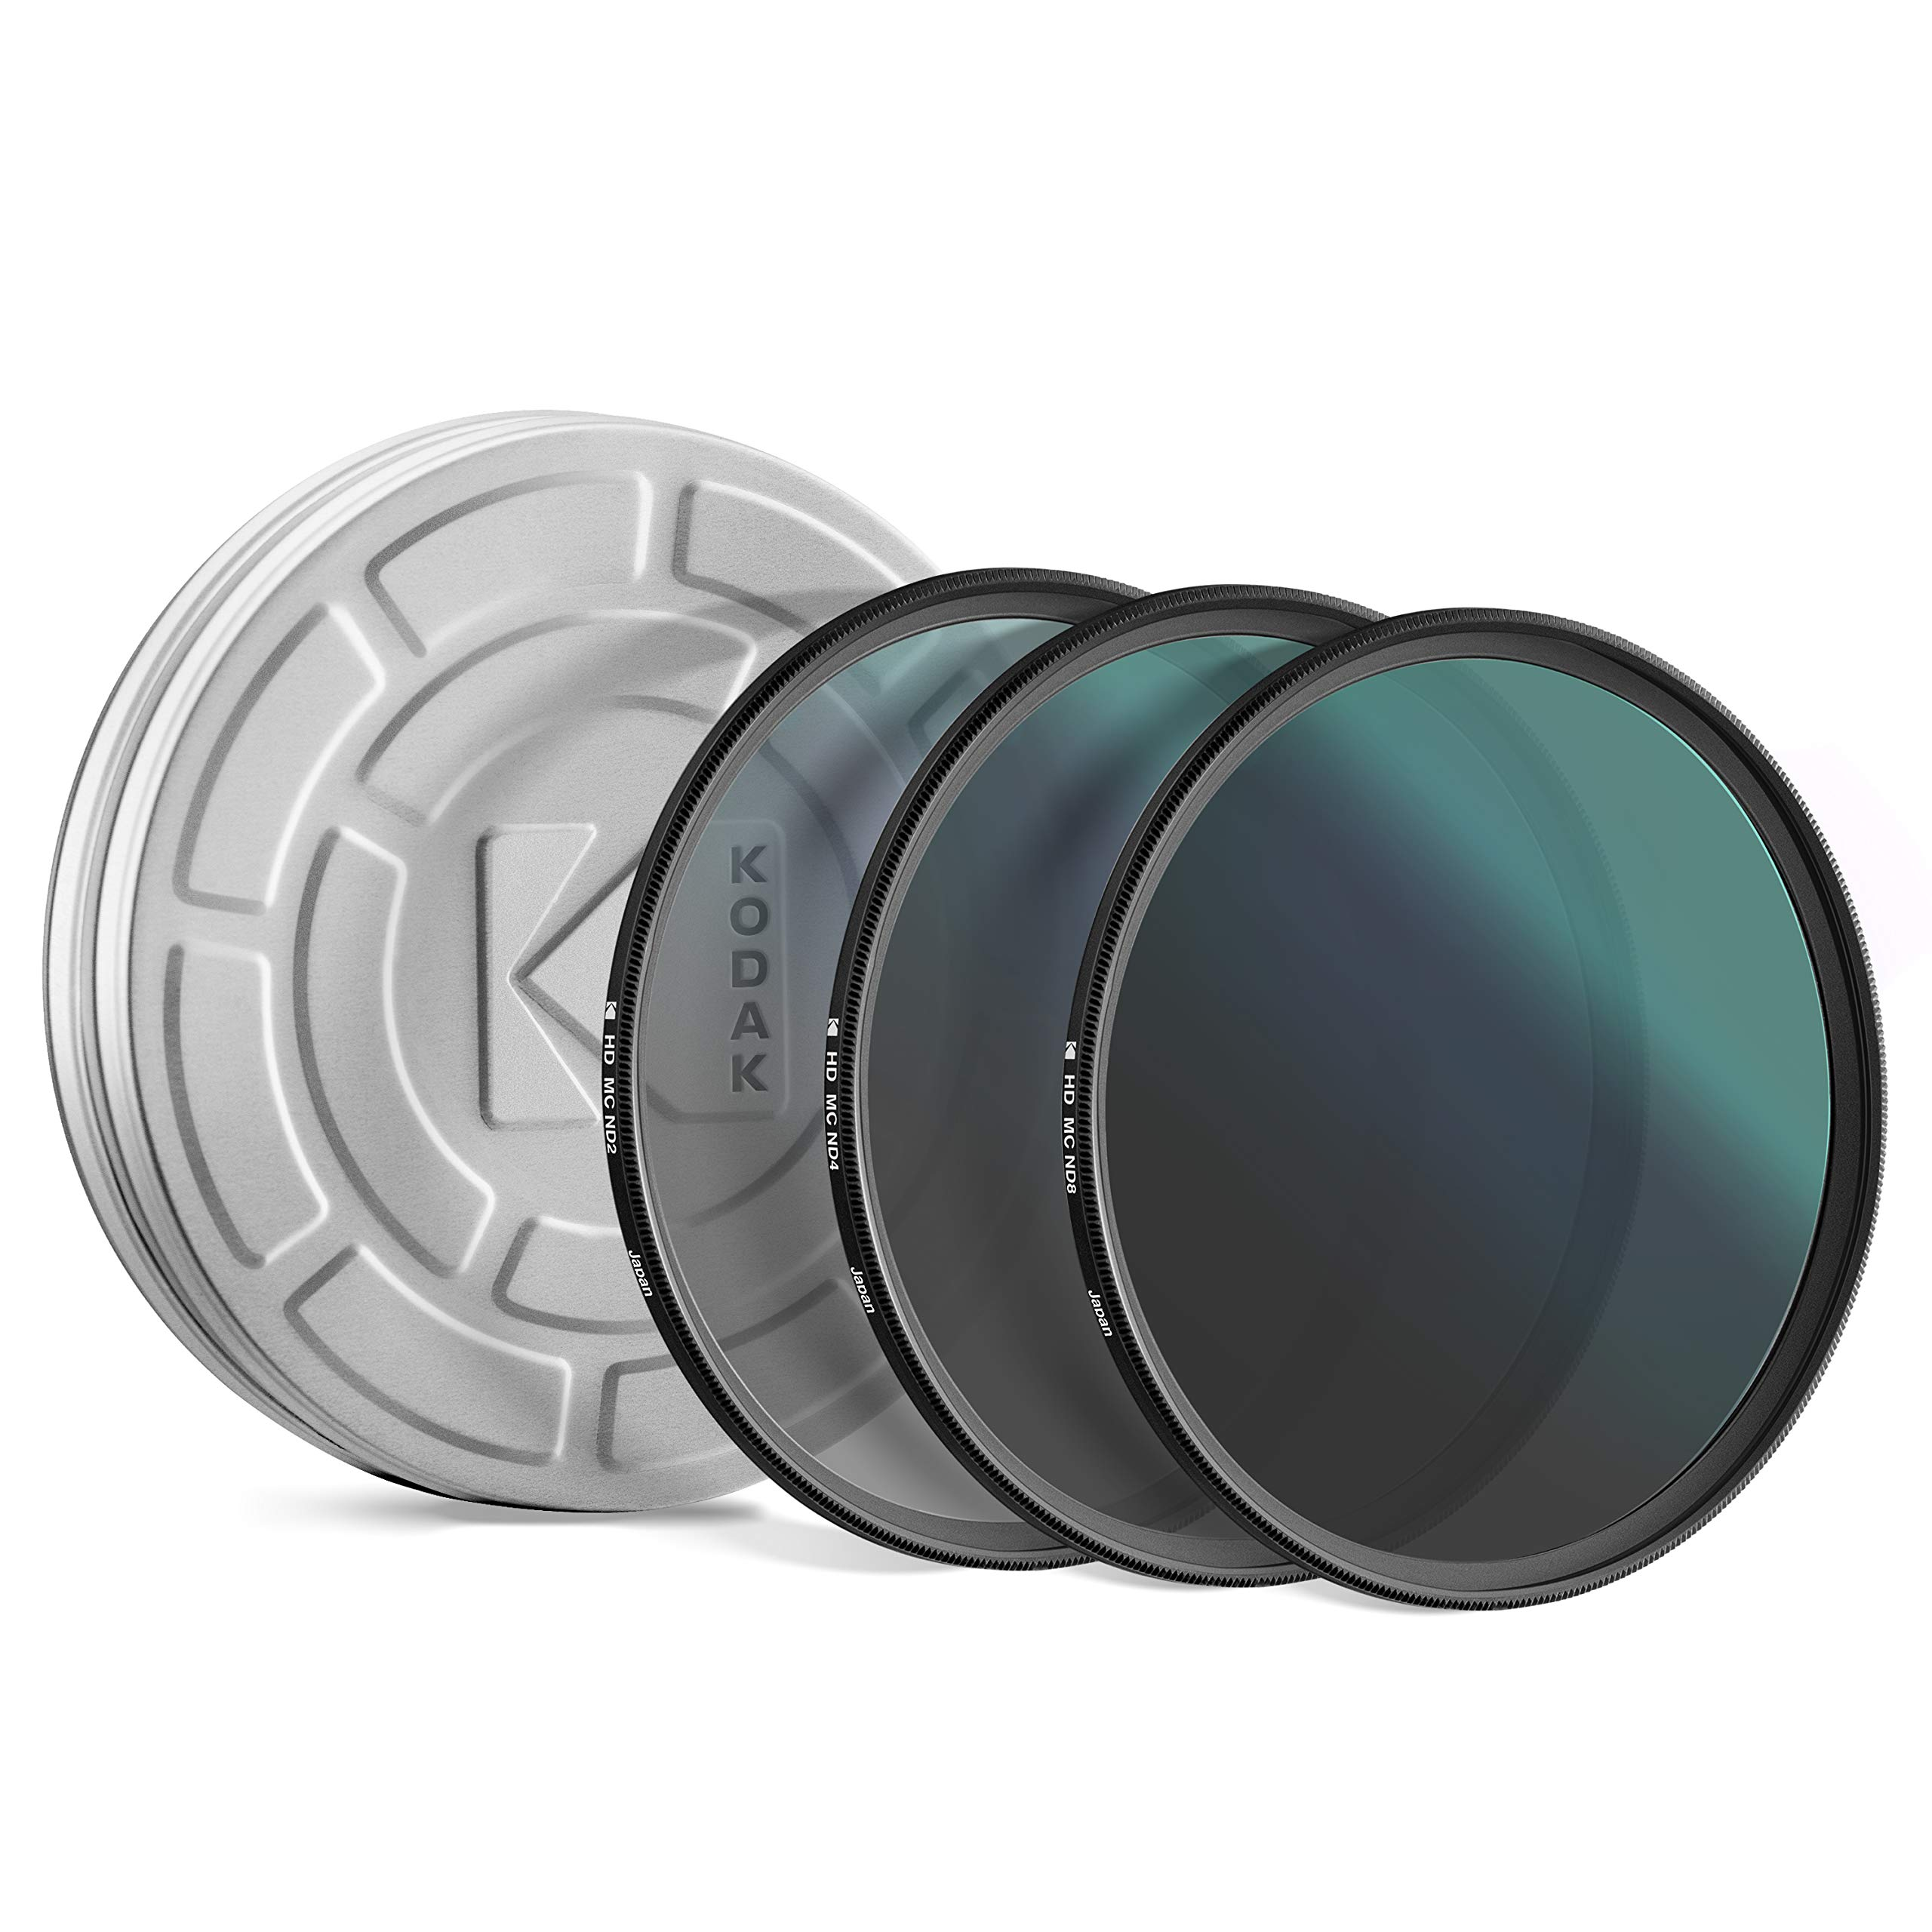 KODAK 62mm Neutral Density Filter Set | Pack of [3] ND2, ND4 & ND8 Filters | Prevent Overexposure Achieve Shallow Depth of Field Capture Motion Blur | Slim, Polished, Multi-Coated Glass & Mini Guide